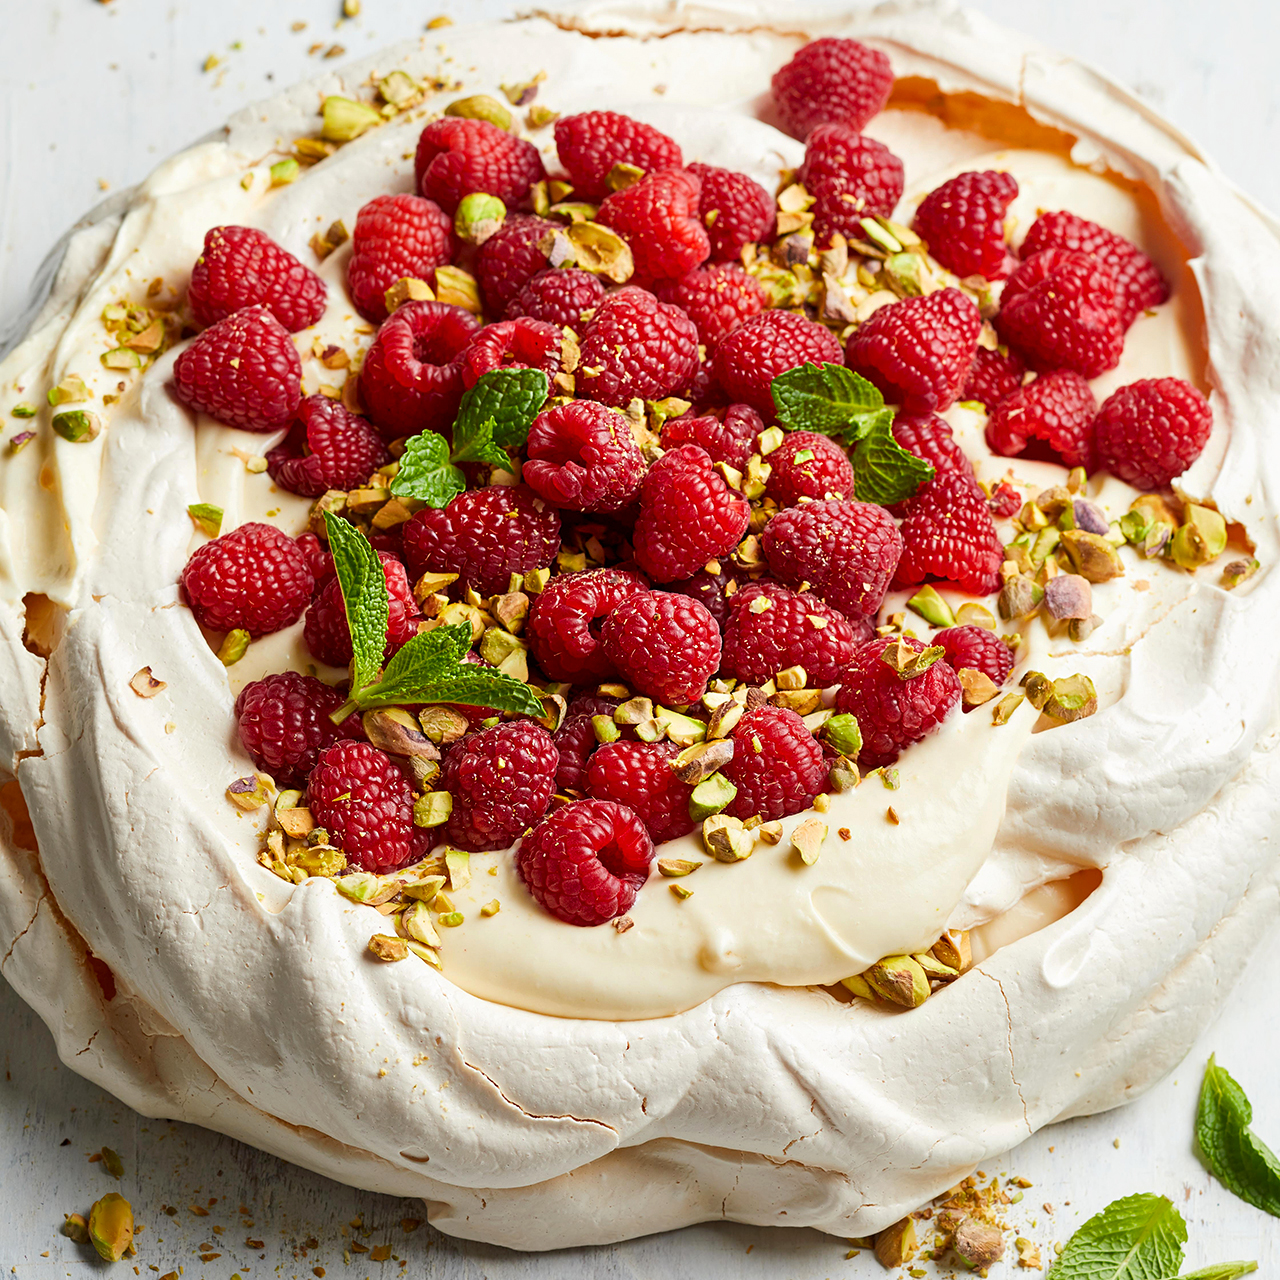 Lemon-Cream Pavlova with Berries